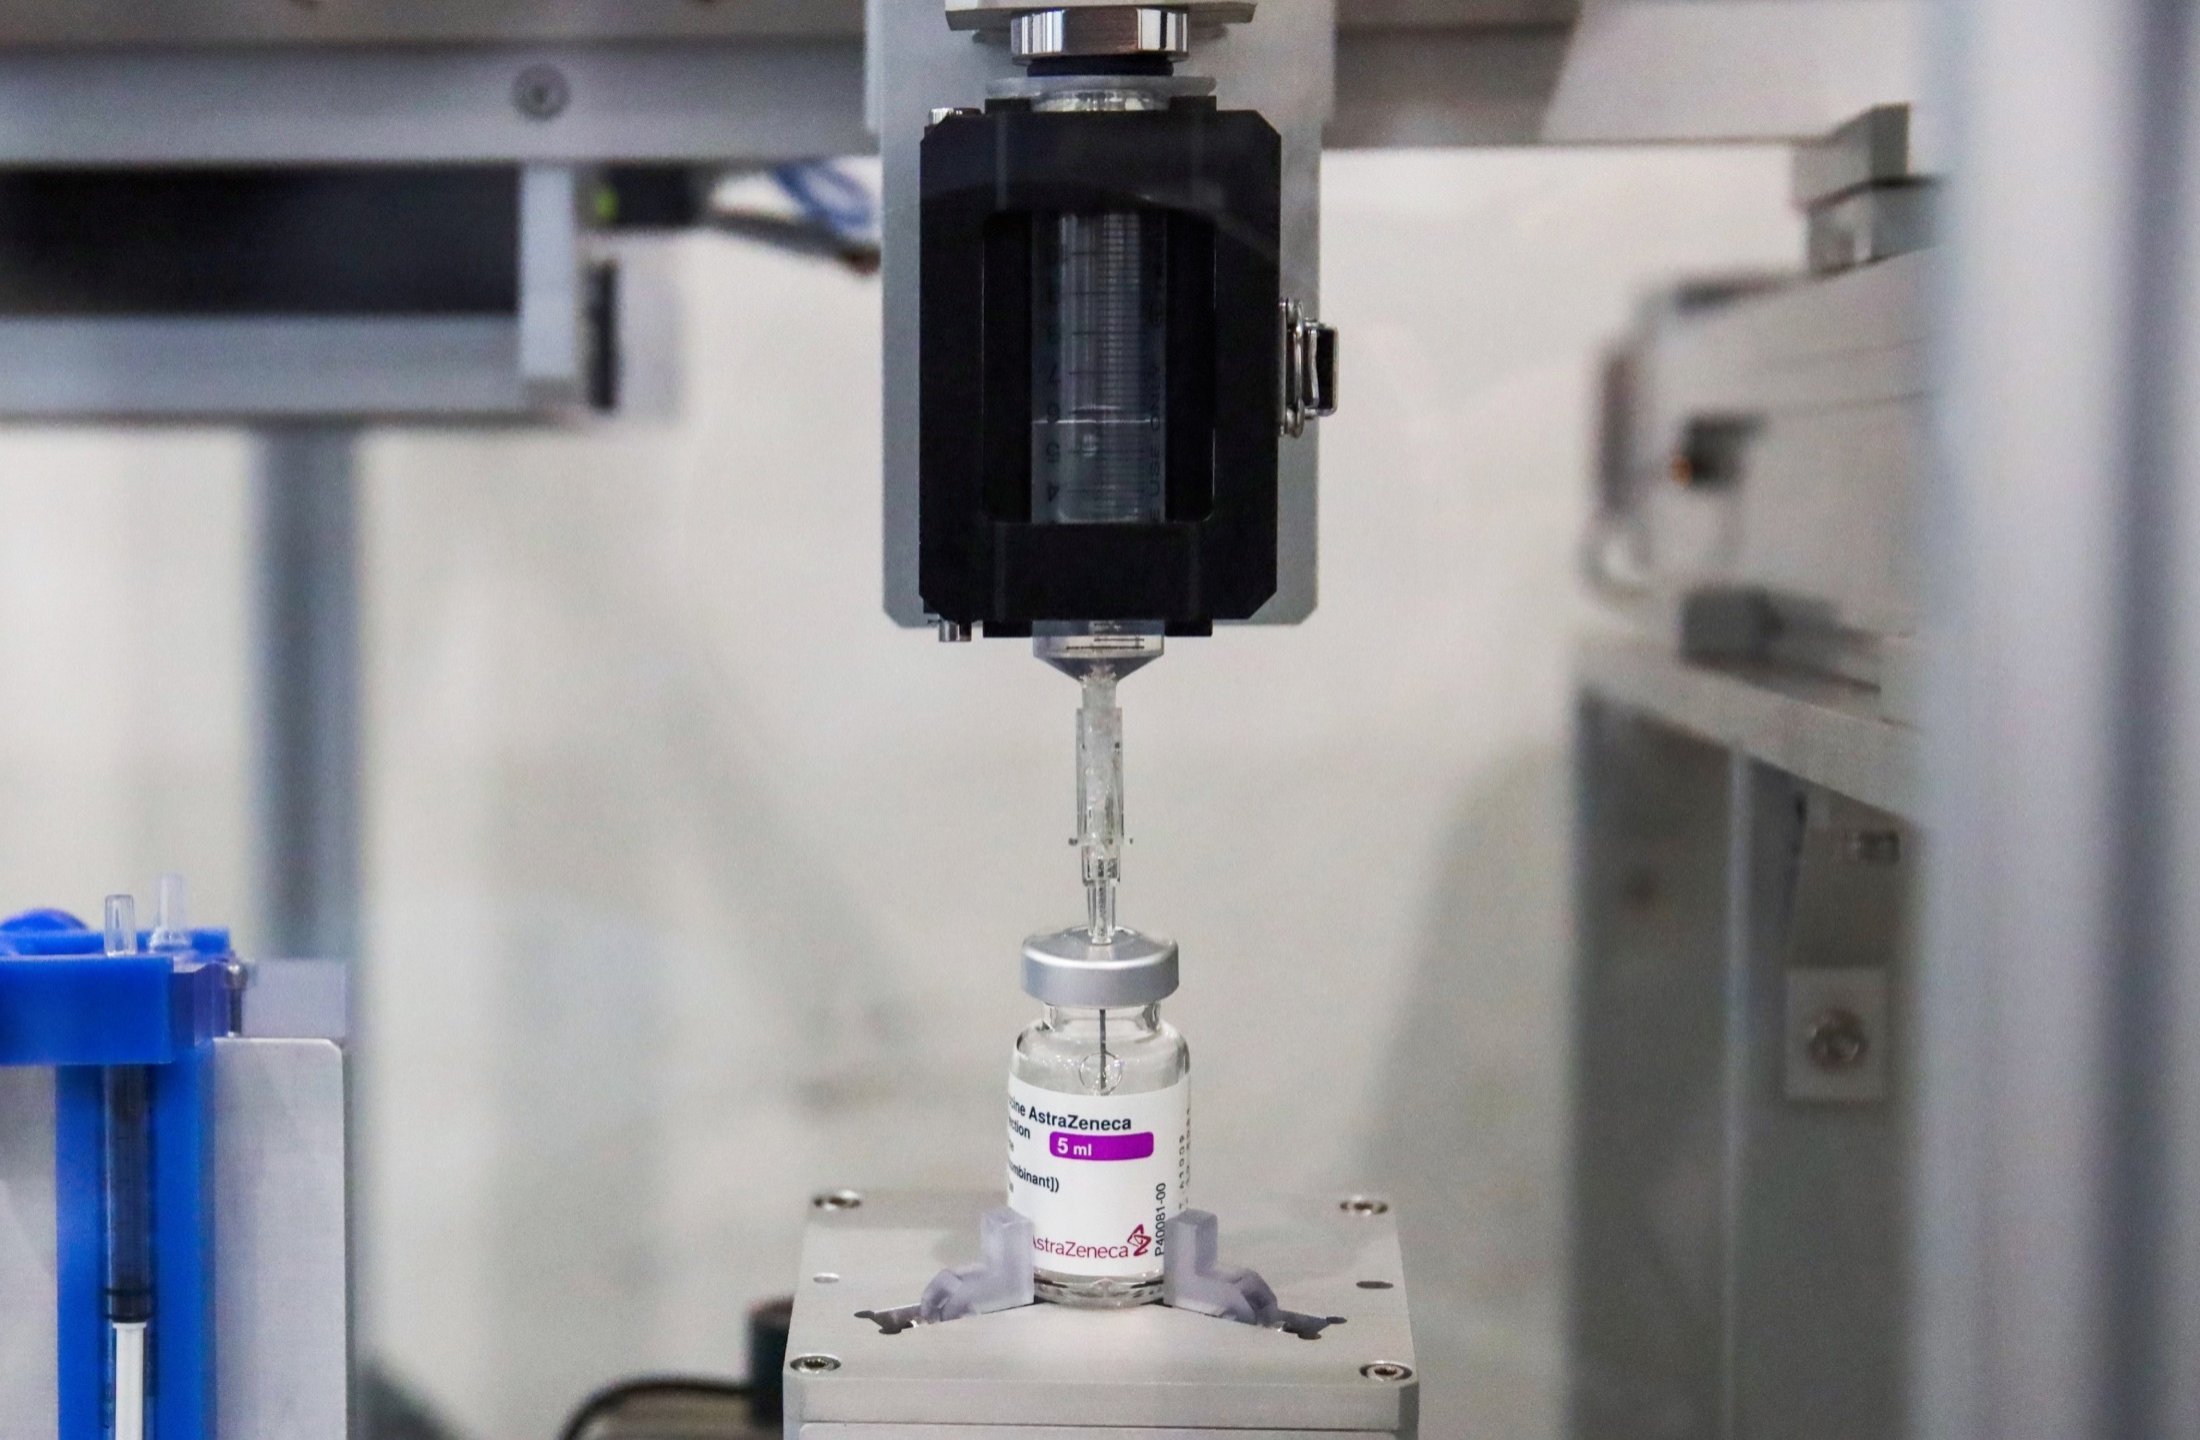 A vaccine extraction machine called AutoVacc, designed by the Chulalongkorn University's Biomedical Engineering Research Center, can be seen in Bangkok, Thailand, Aug. 23, 2021. (Reuters Photo)